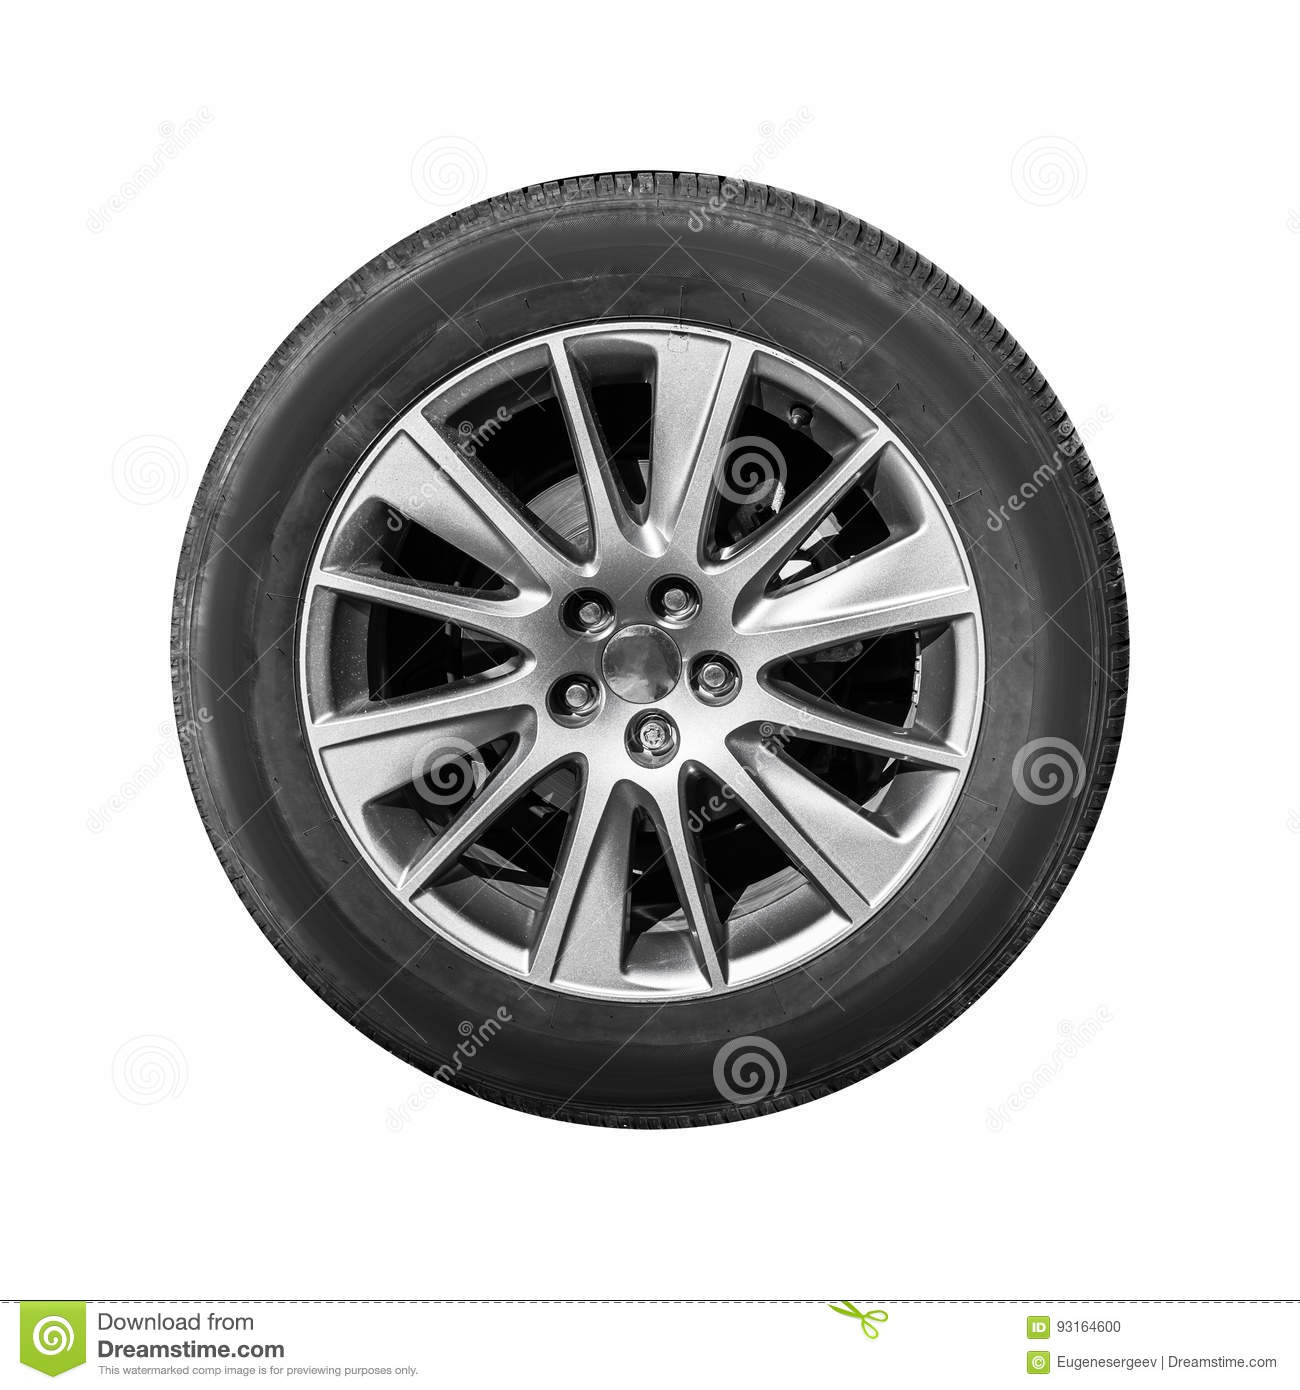 Modern crossover car wheel, front view isolated